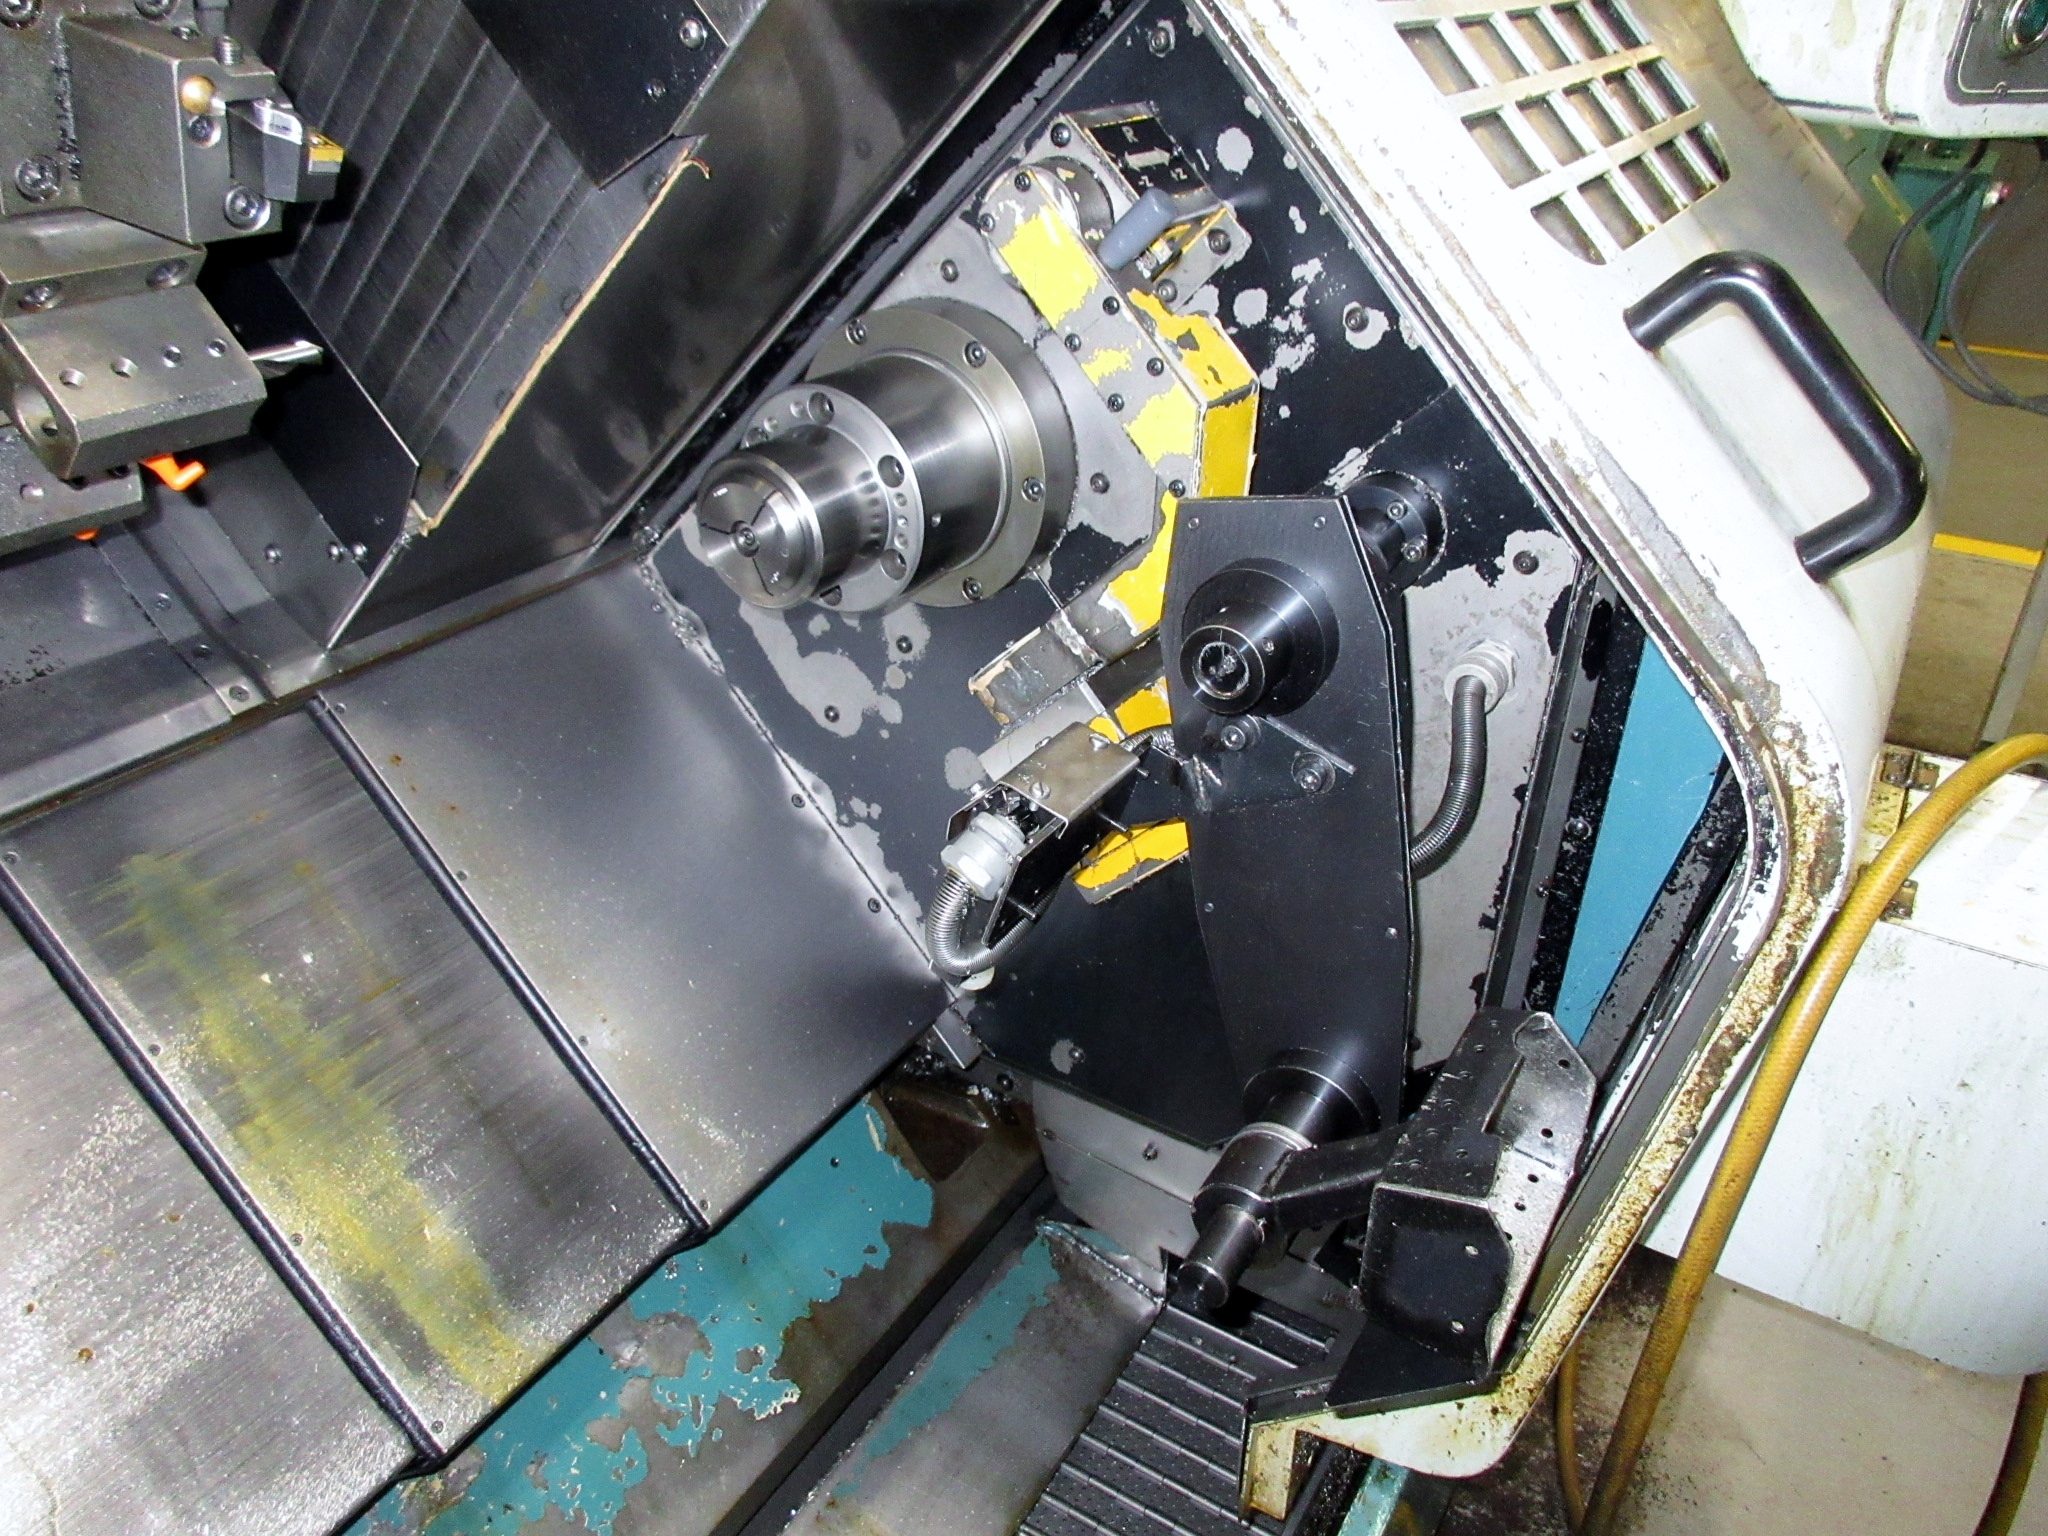 NAKAMURA TOME TW-20 6-AXIS CNC TWIN SPINDLE TURNING CENTER - Image 7 of 17